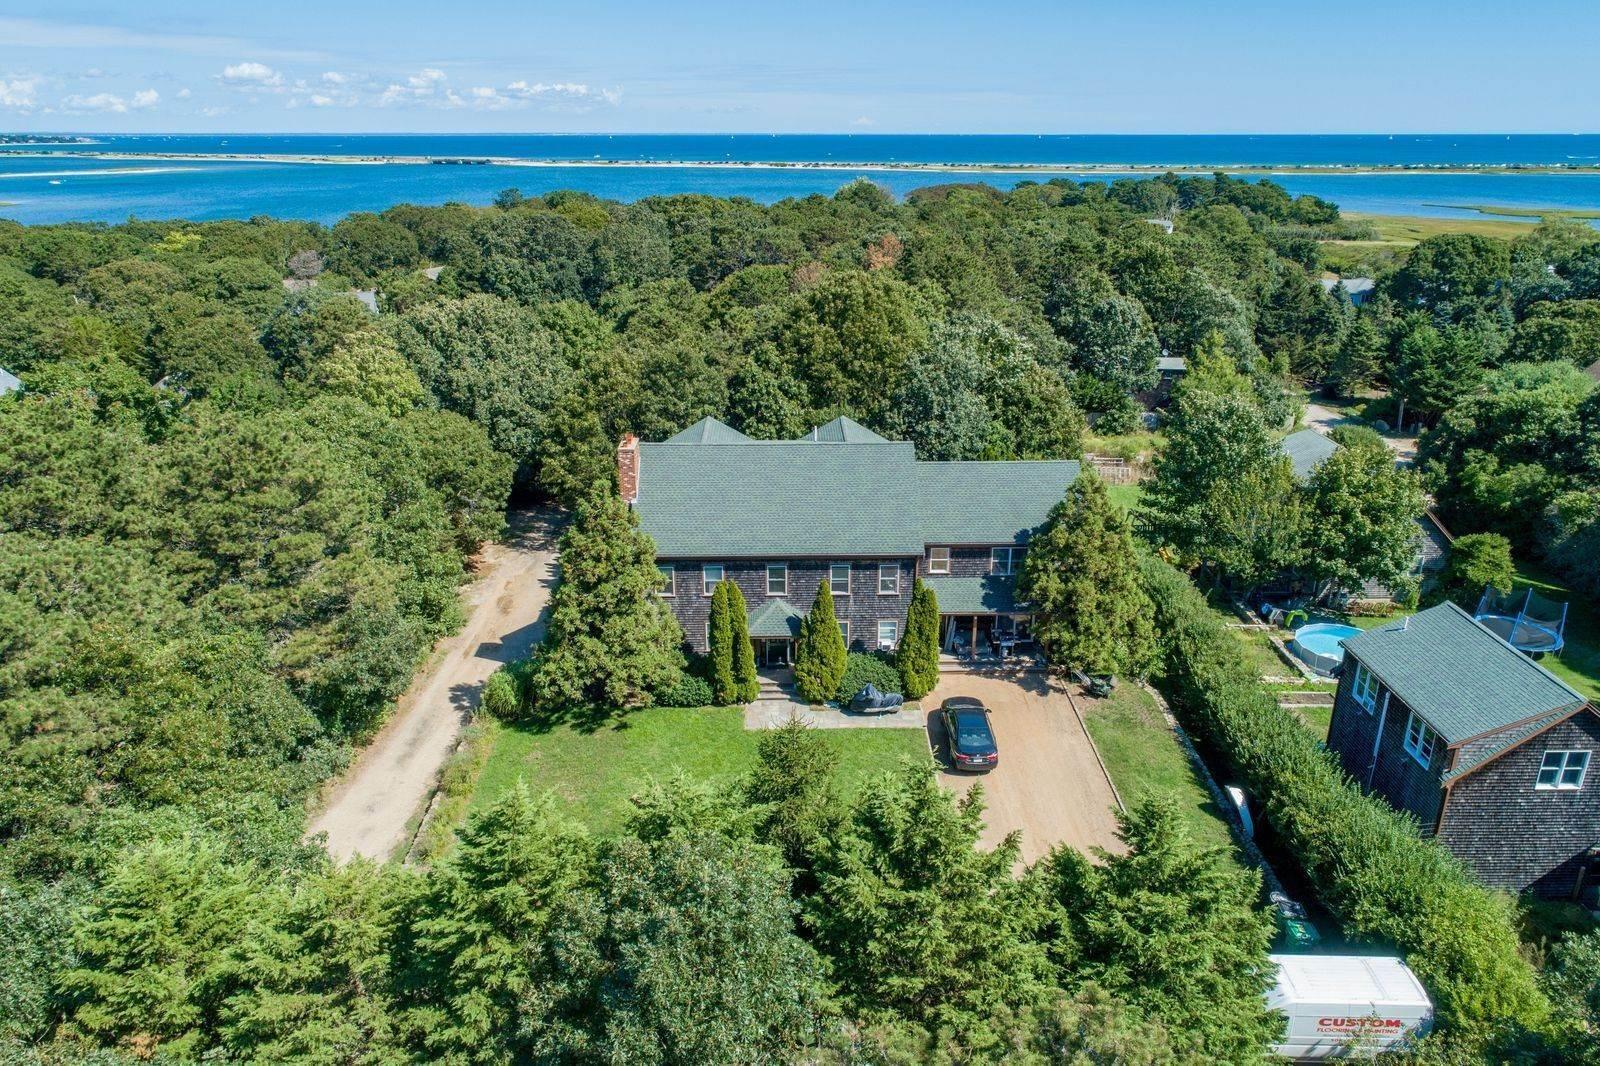 15. Single Family Home for Sale at 81 12th Street North, Edgartown, Massachusetts,02539 United States